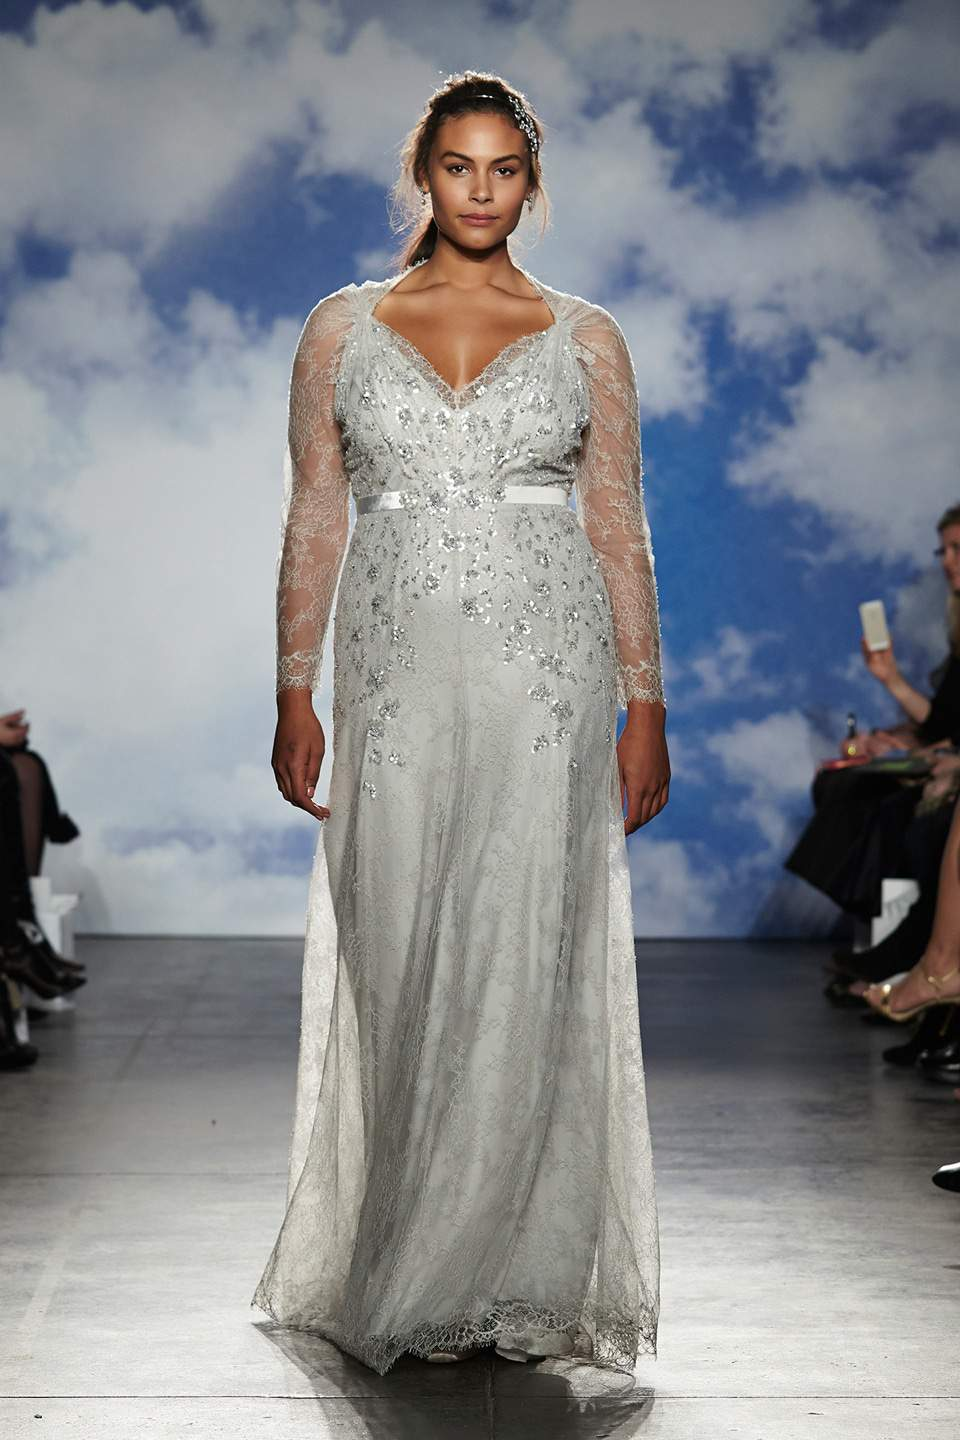 Jenny Packham 2015 Bridal Collection Features Plus Size Models